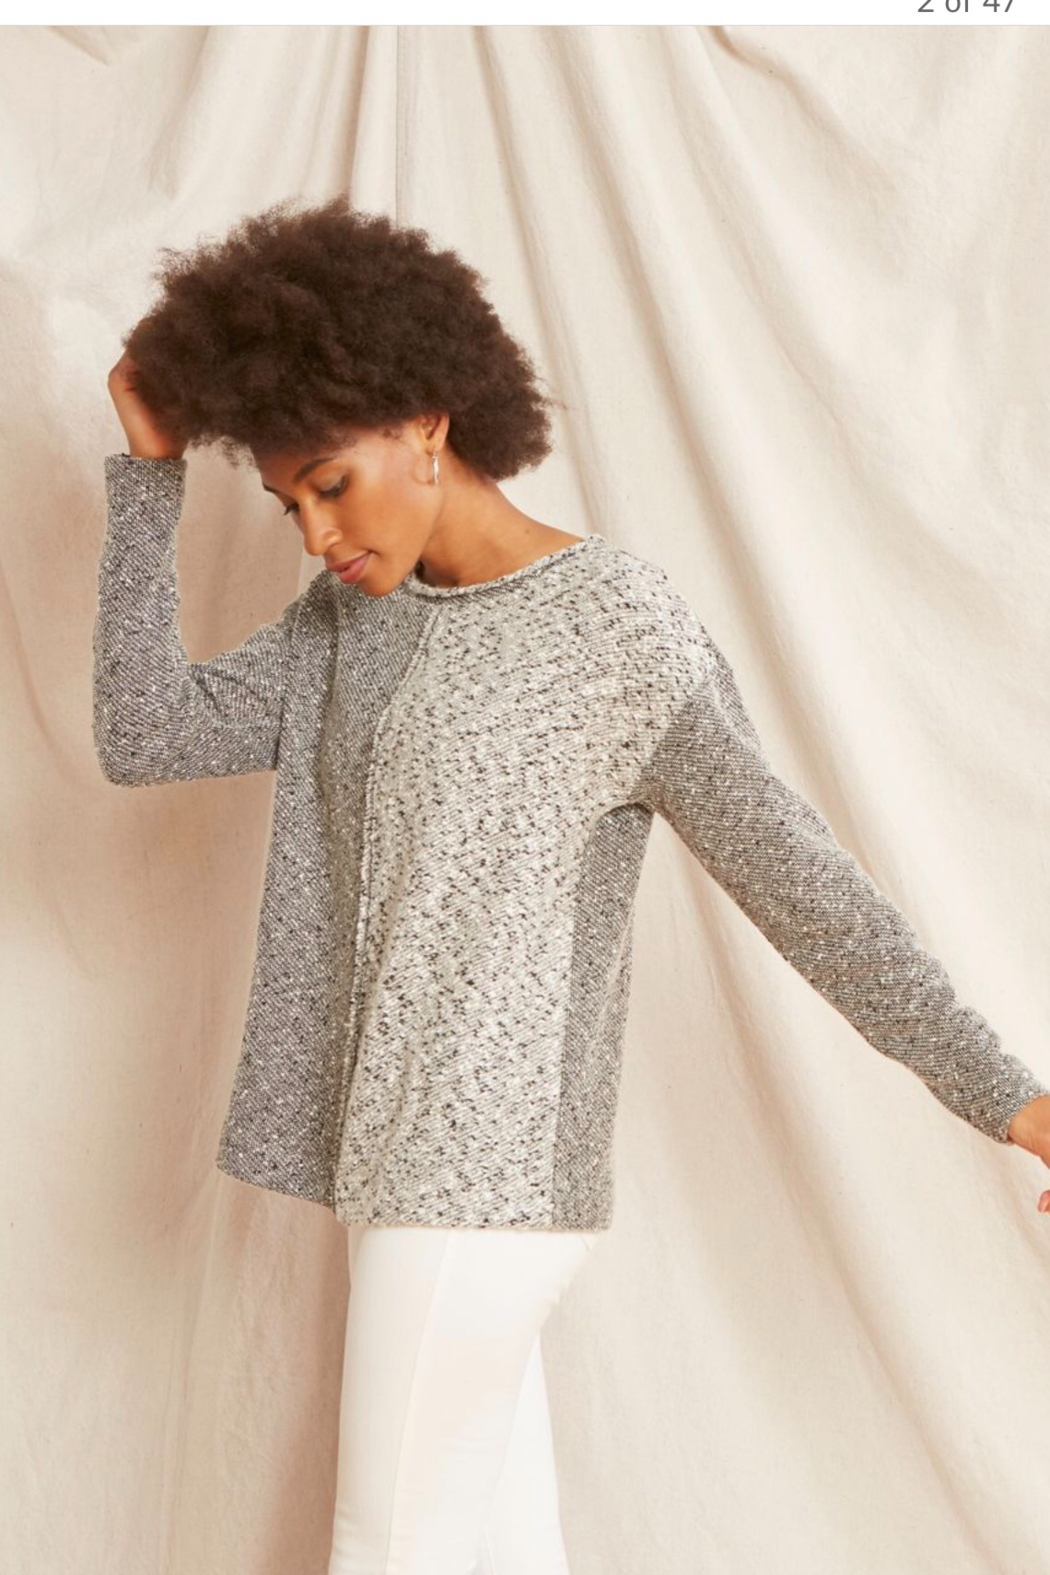 Nic +Zoe Black/grey/white speckled crew neck pullover sweater. - Main Image